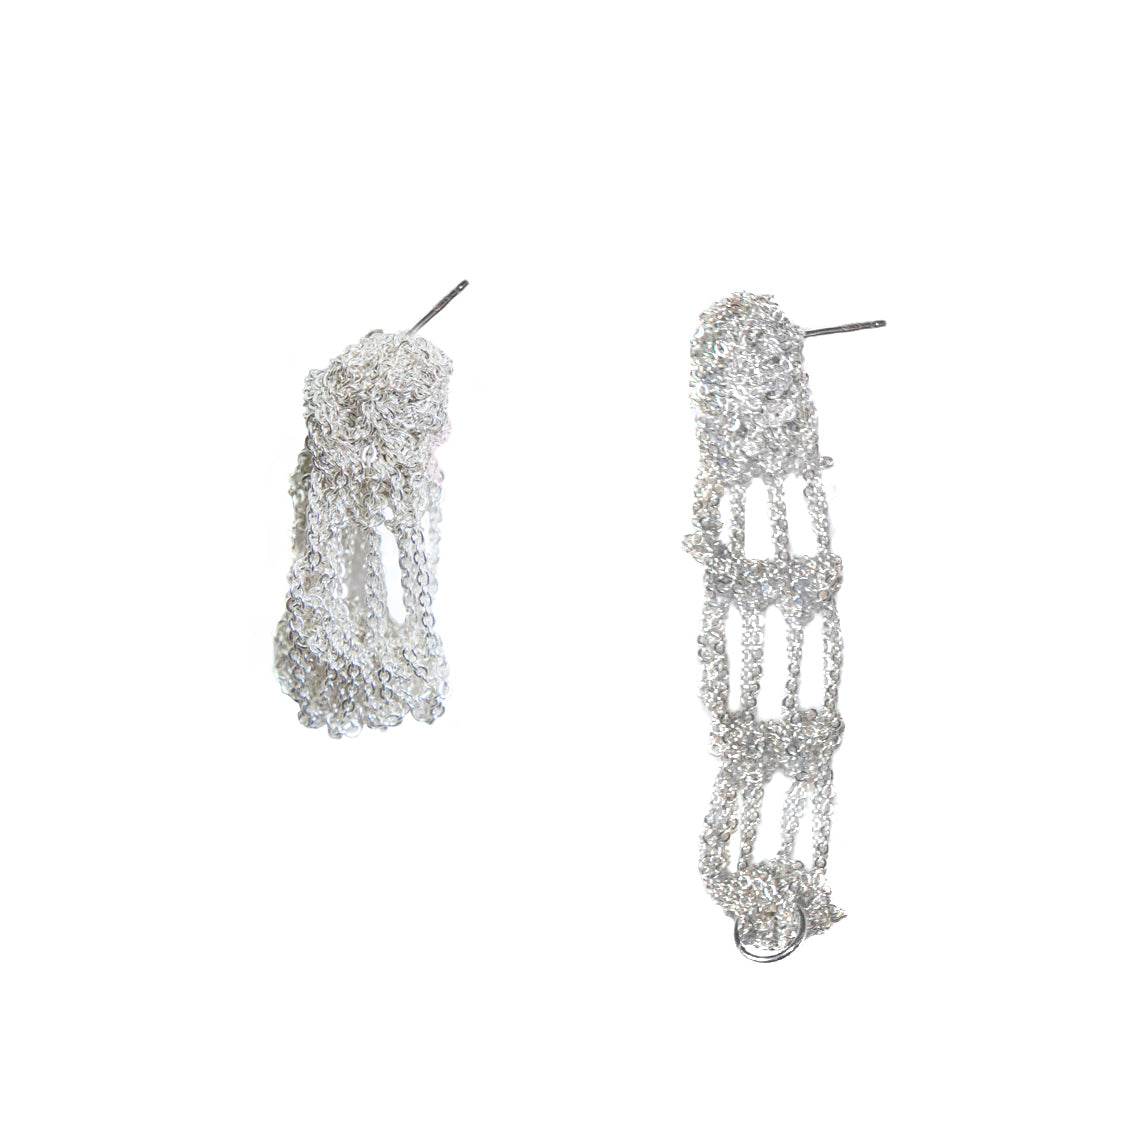 Cuff Earrings in Silver